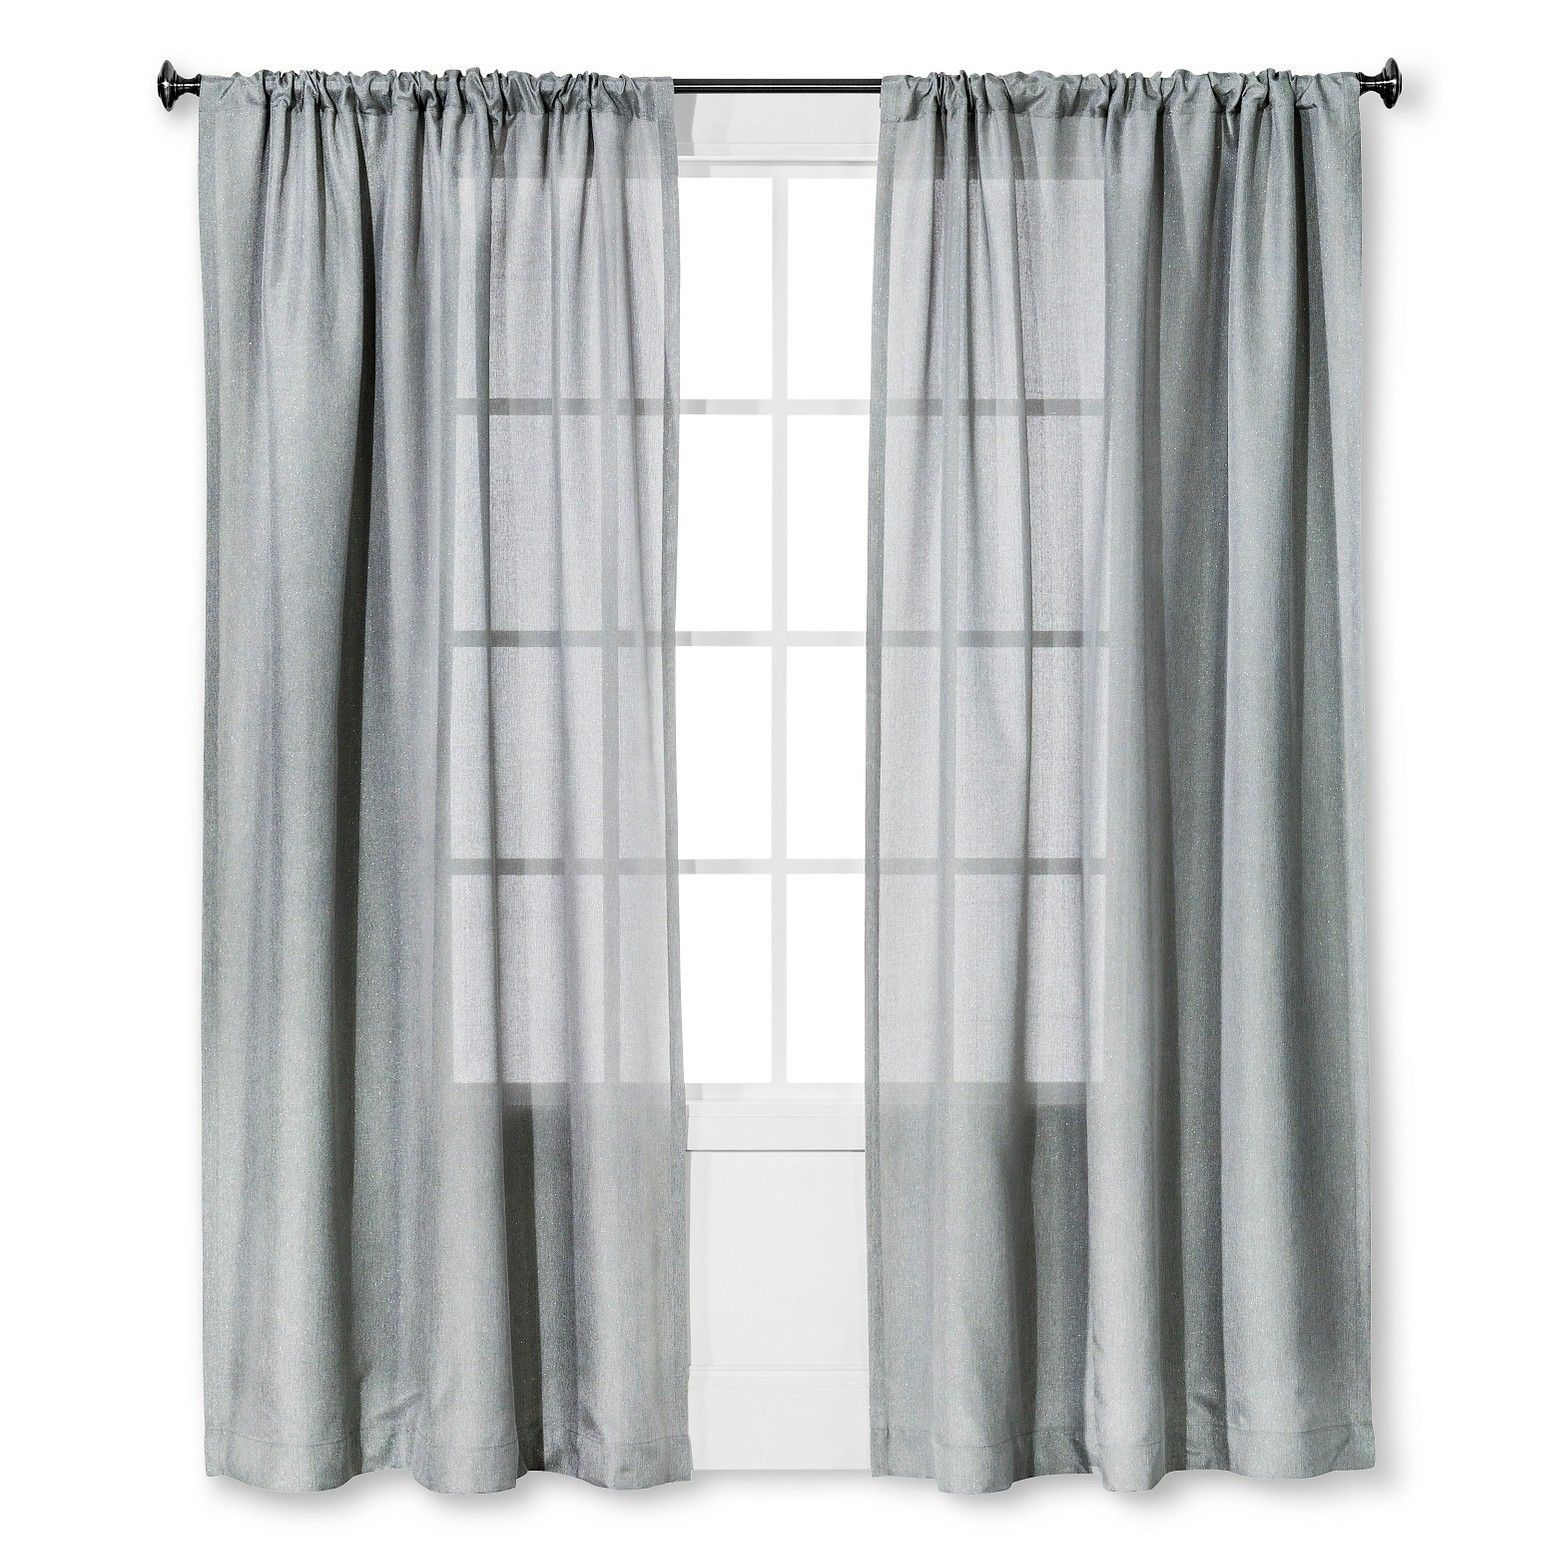 Curtains We Bought From Target For Bedroom Threshold Metallic Curtain Panel The Sheer Fabric Has Lasting Visual Appea Panel Curtains Window Curtains Curtains